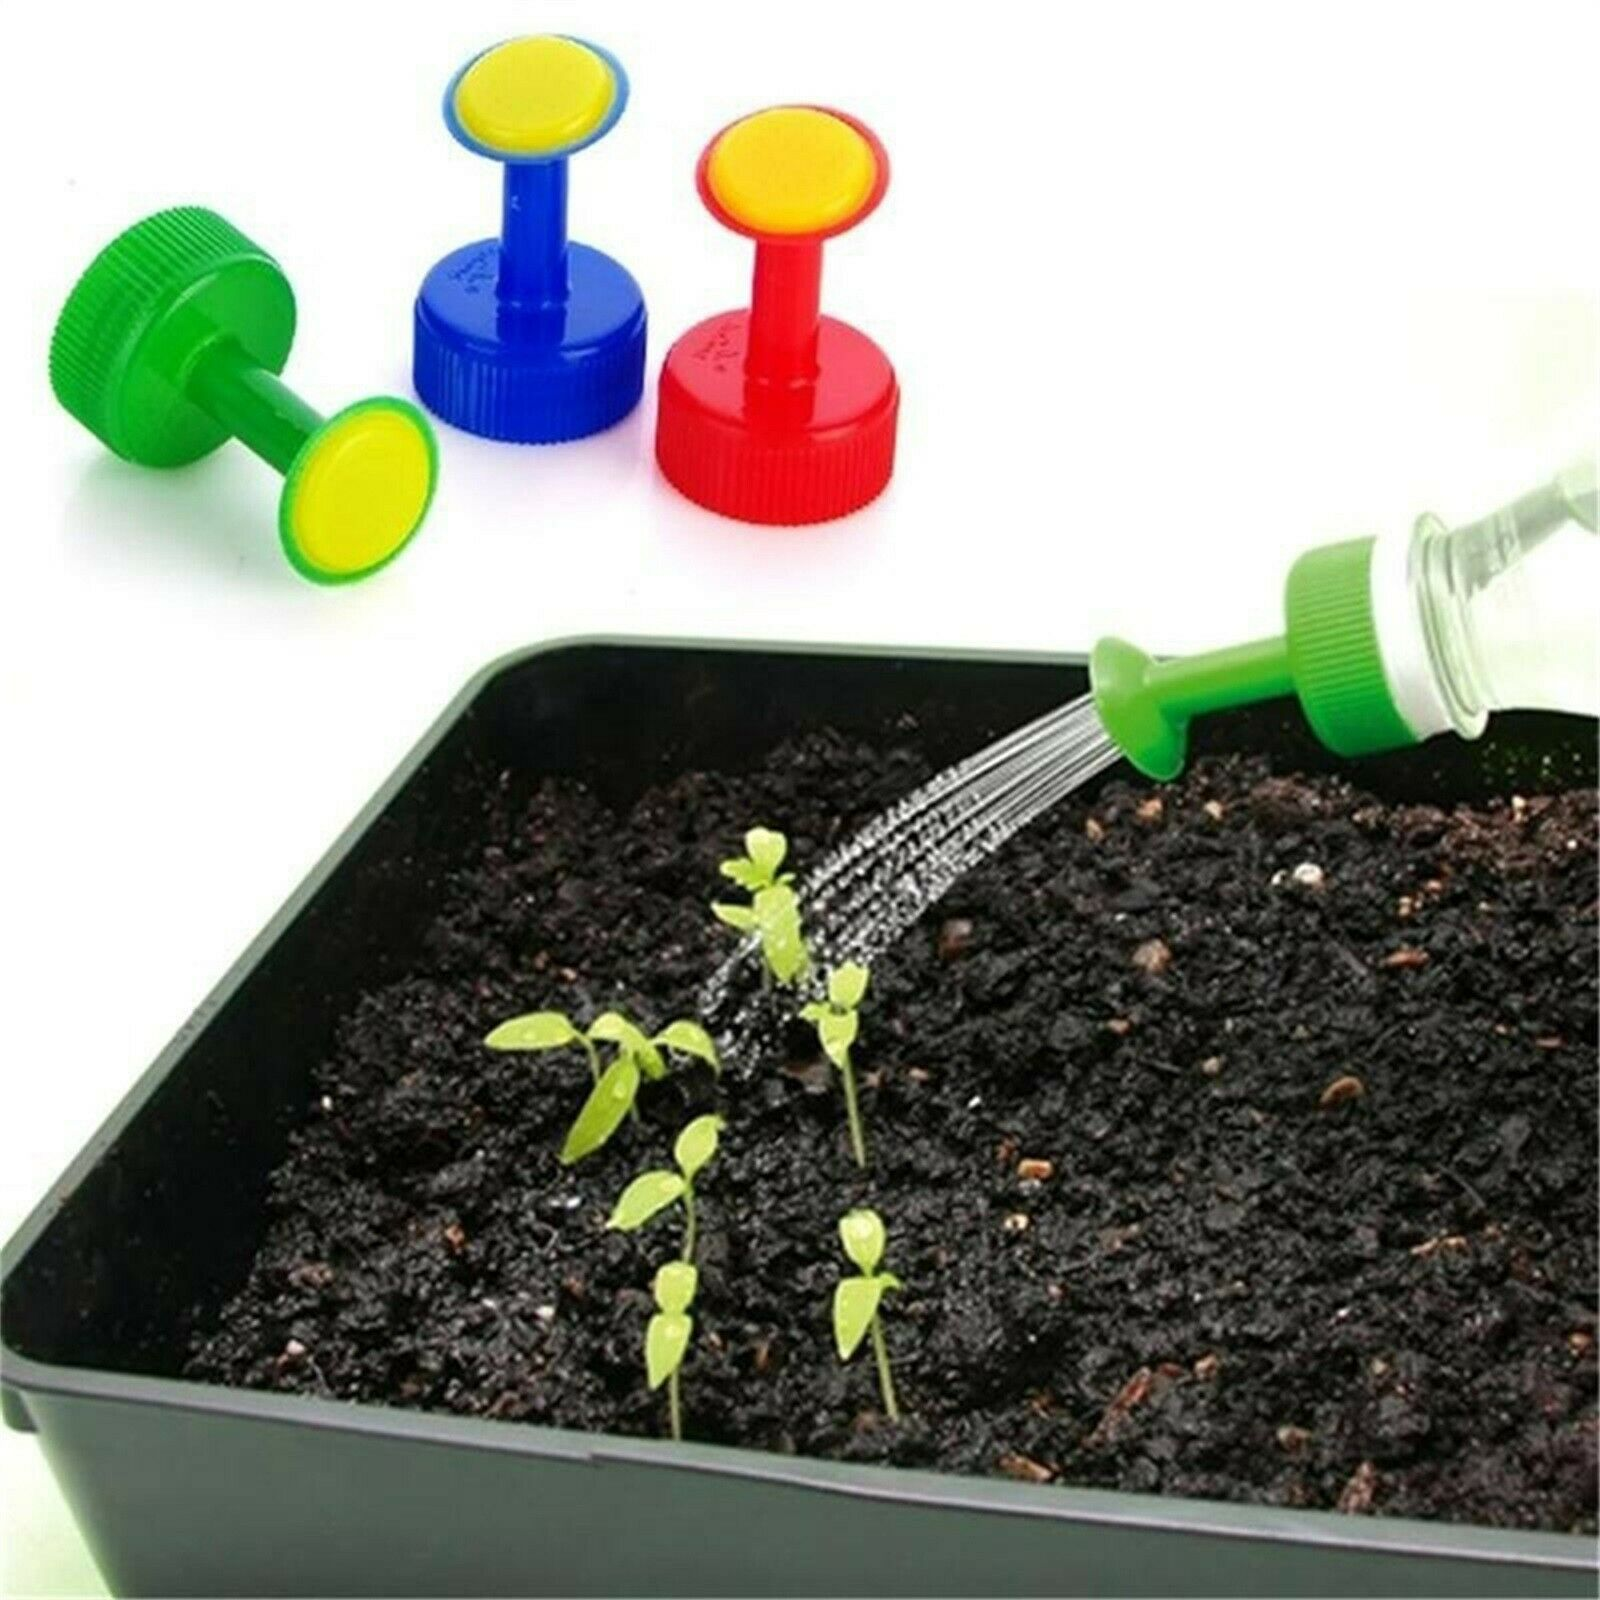 PVC Portable Watering Artifact Light And Fast For Vegetable Watering 3pcs/6pcs